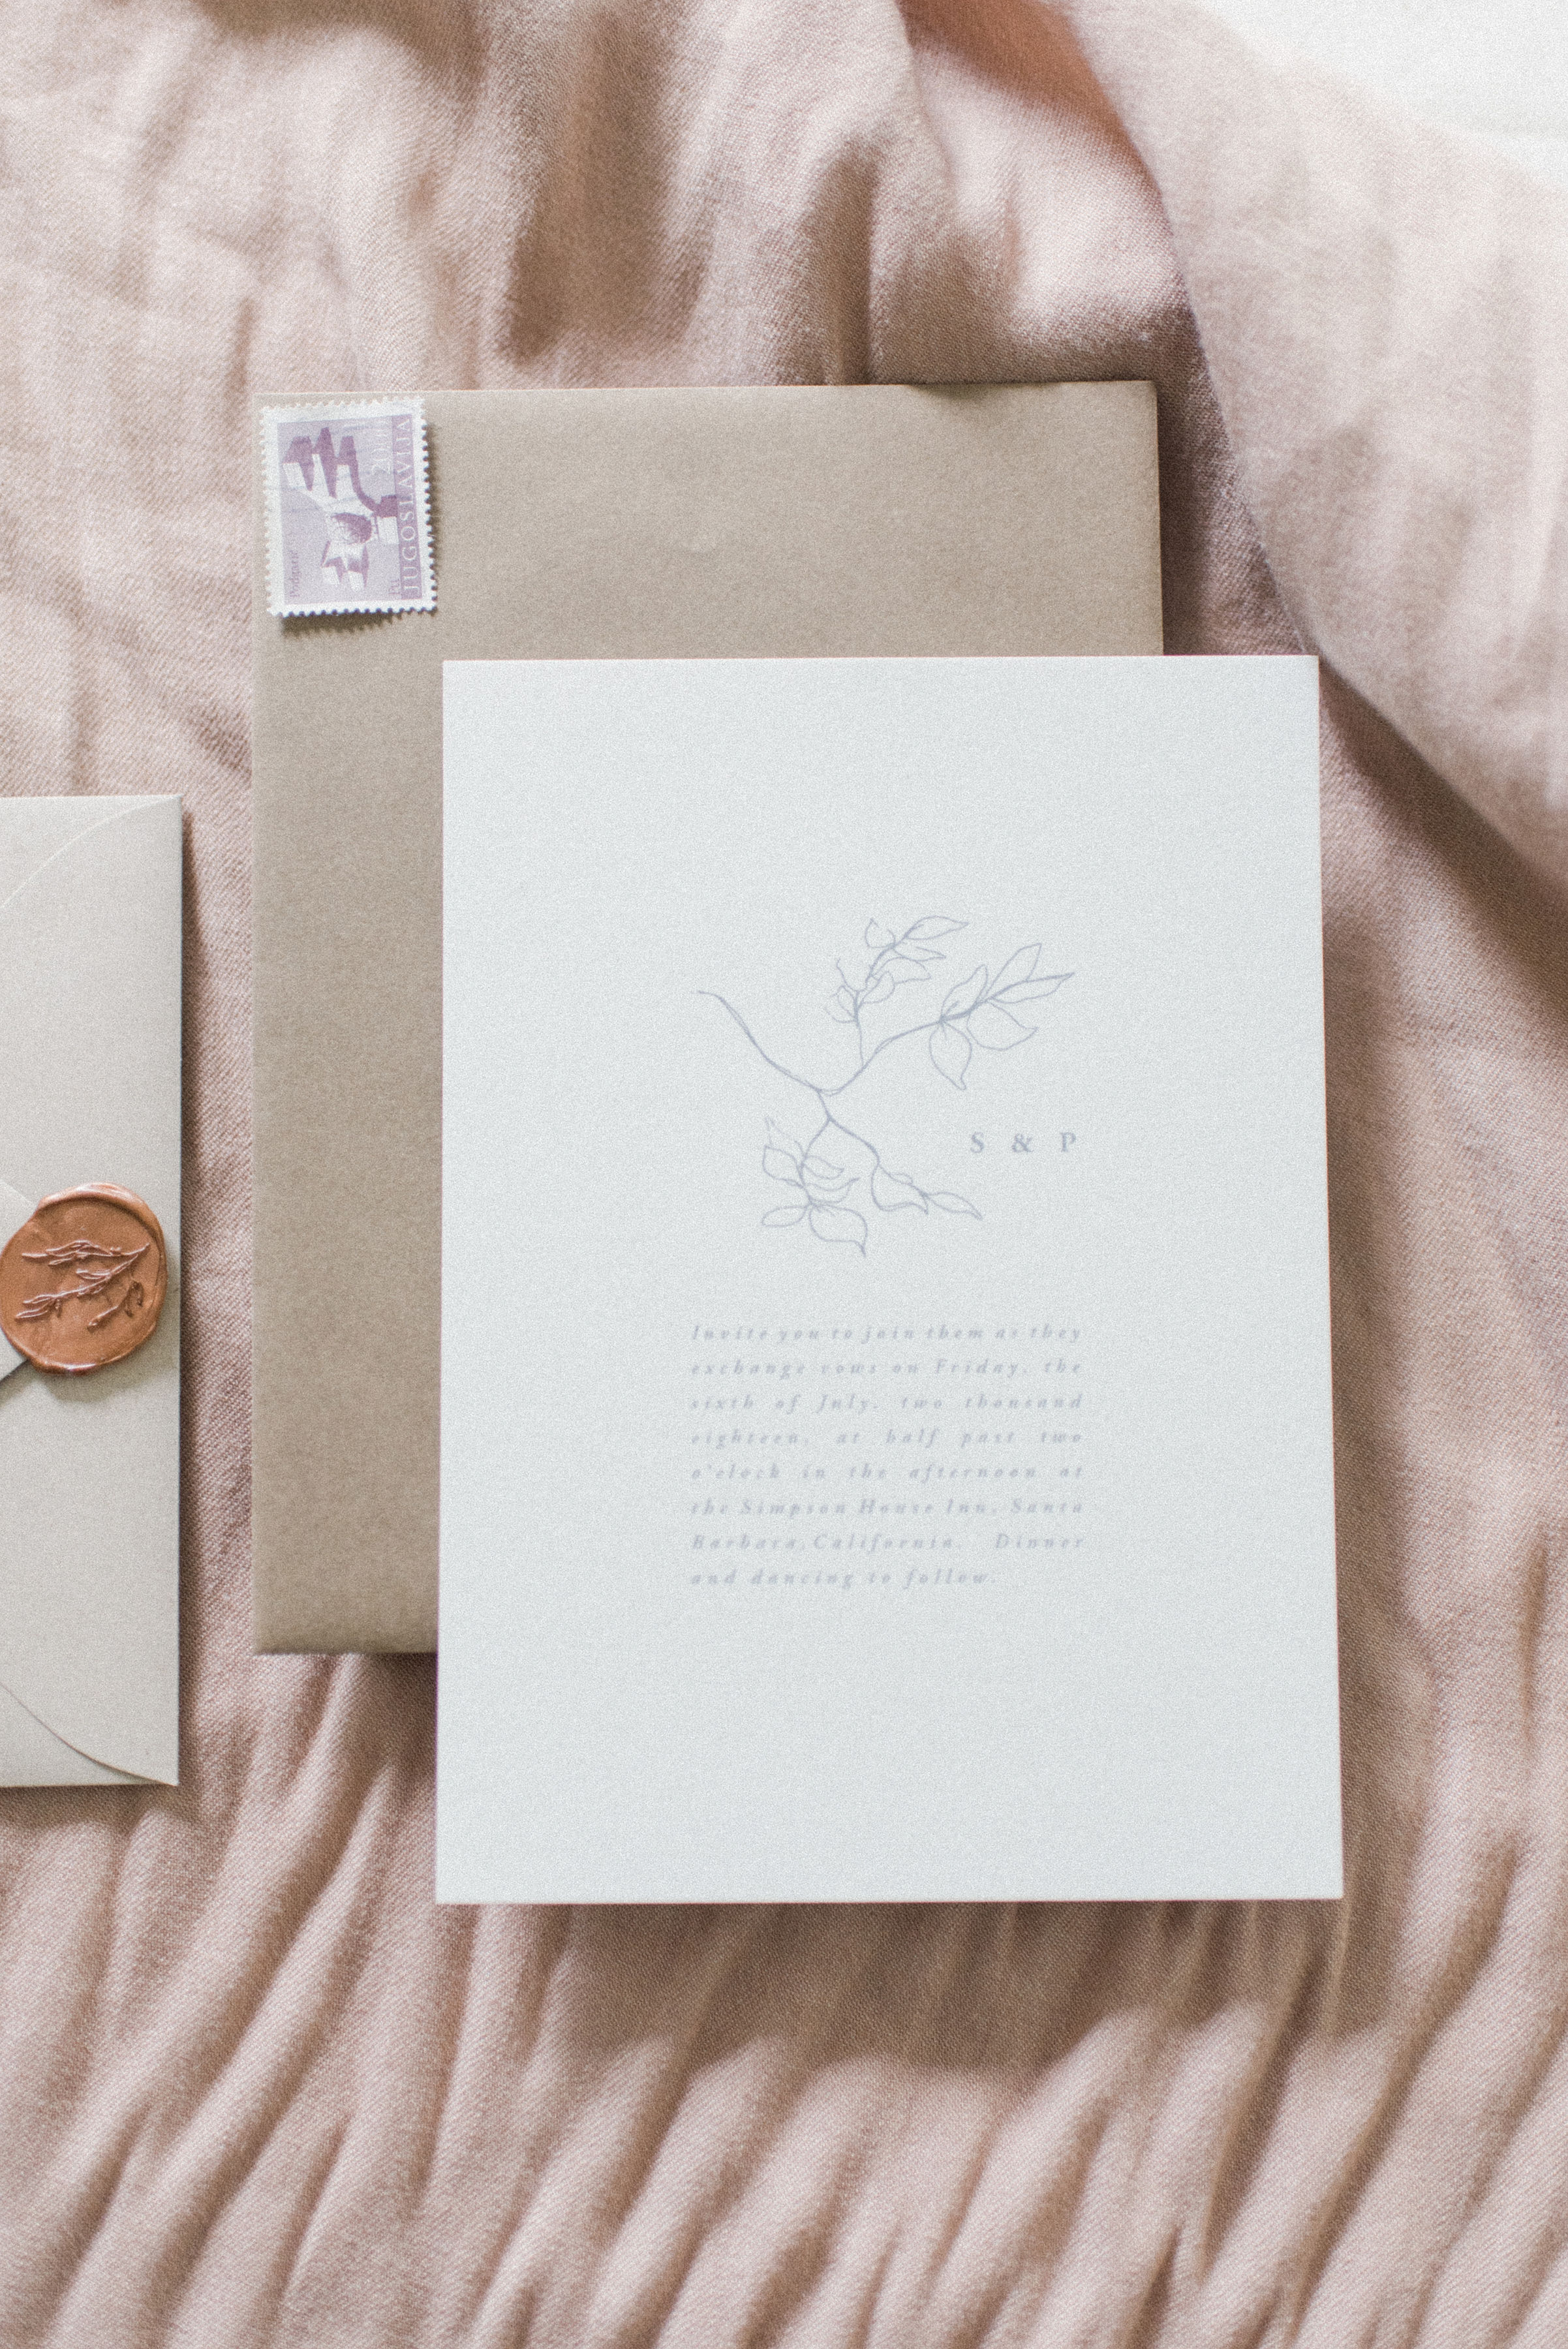 Thoughtful wedding stationery for couples who are wildly in love.